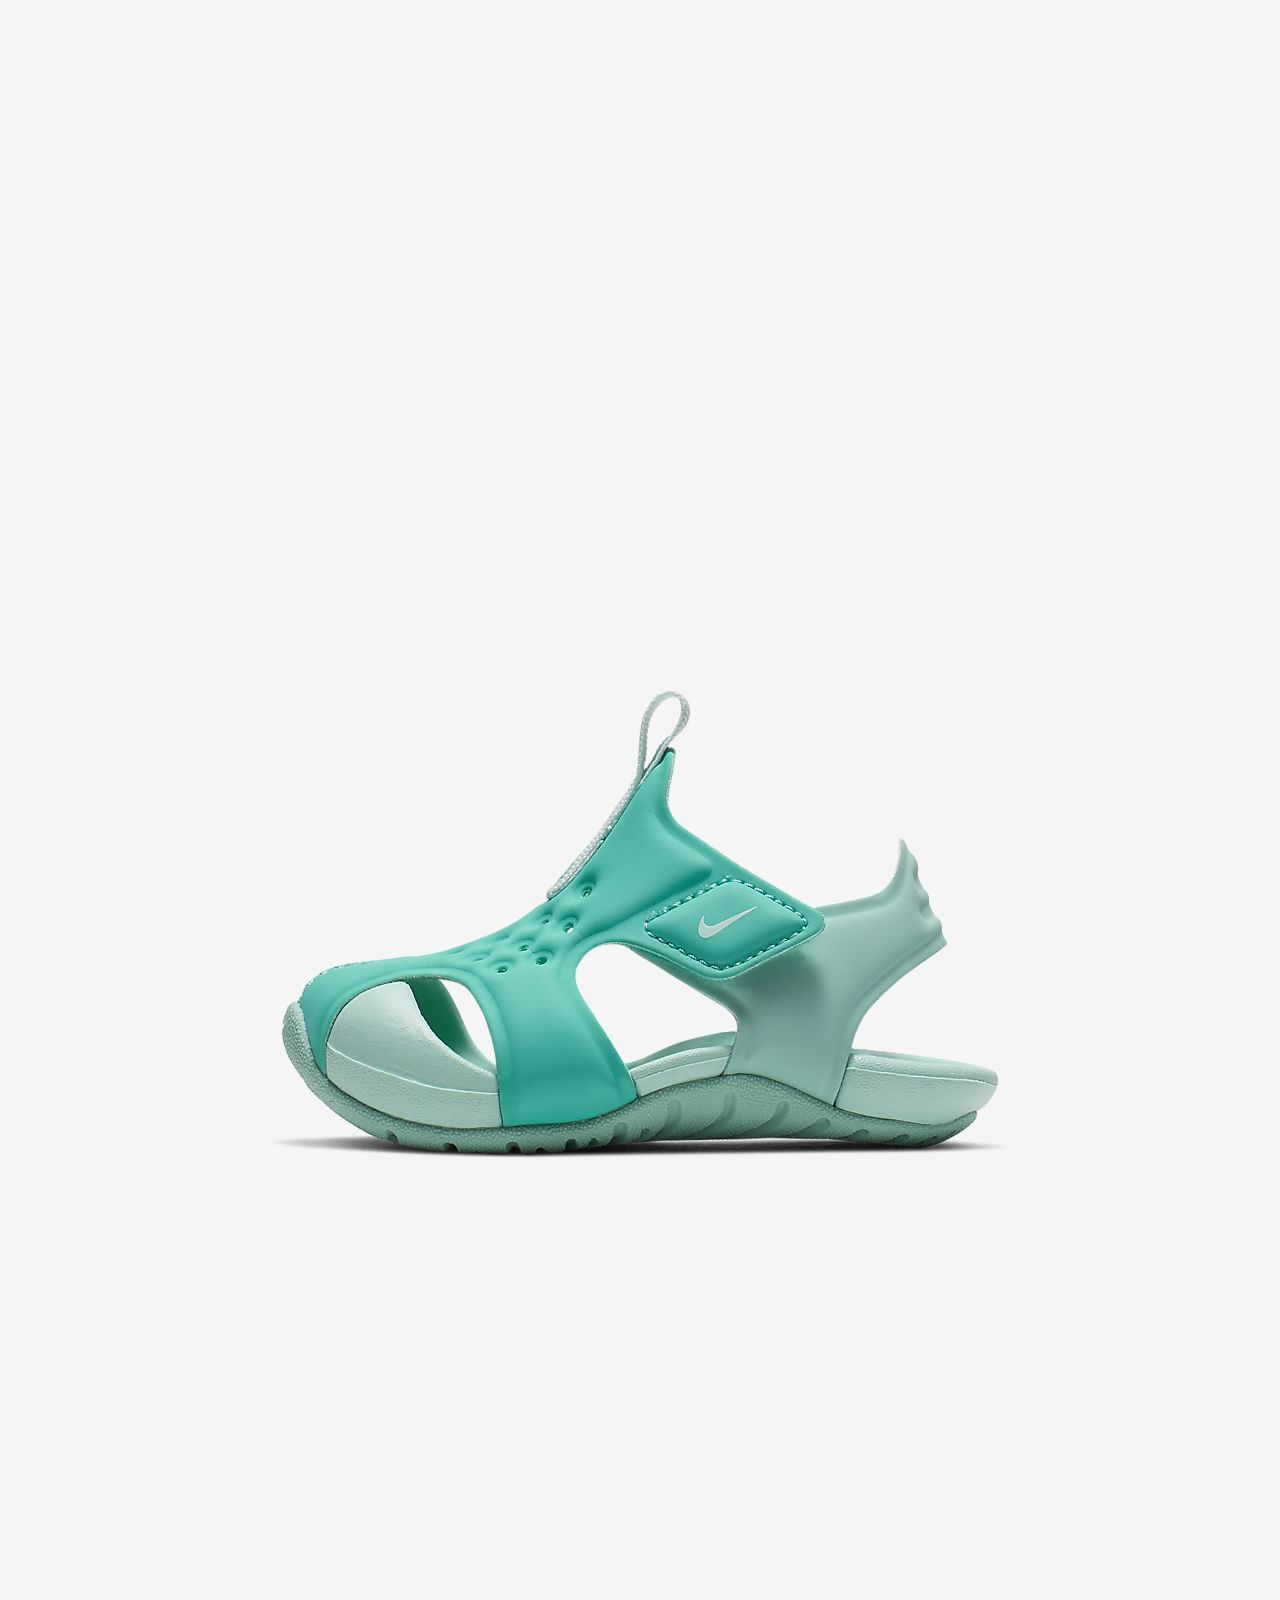 Nike Sunray Protect 2 Baby & Toddler Sandal